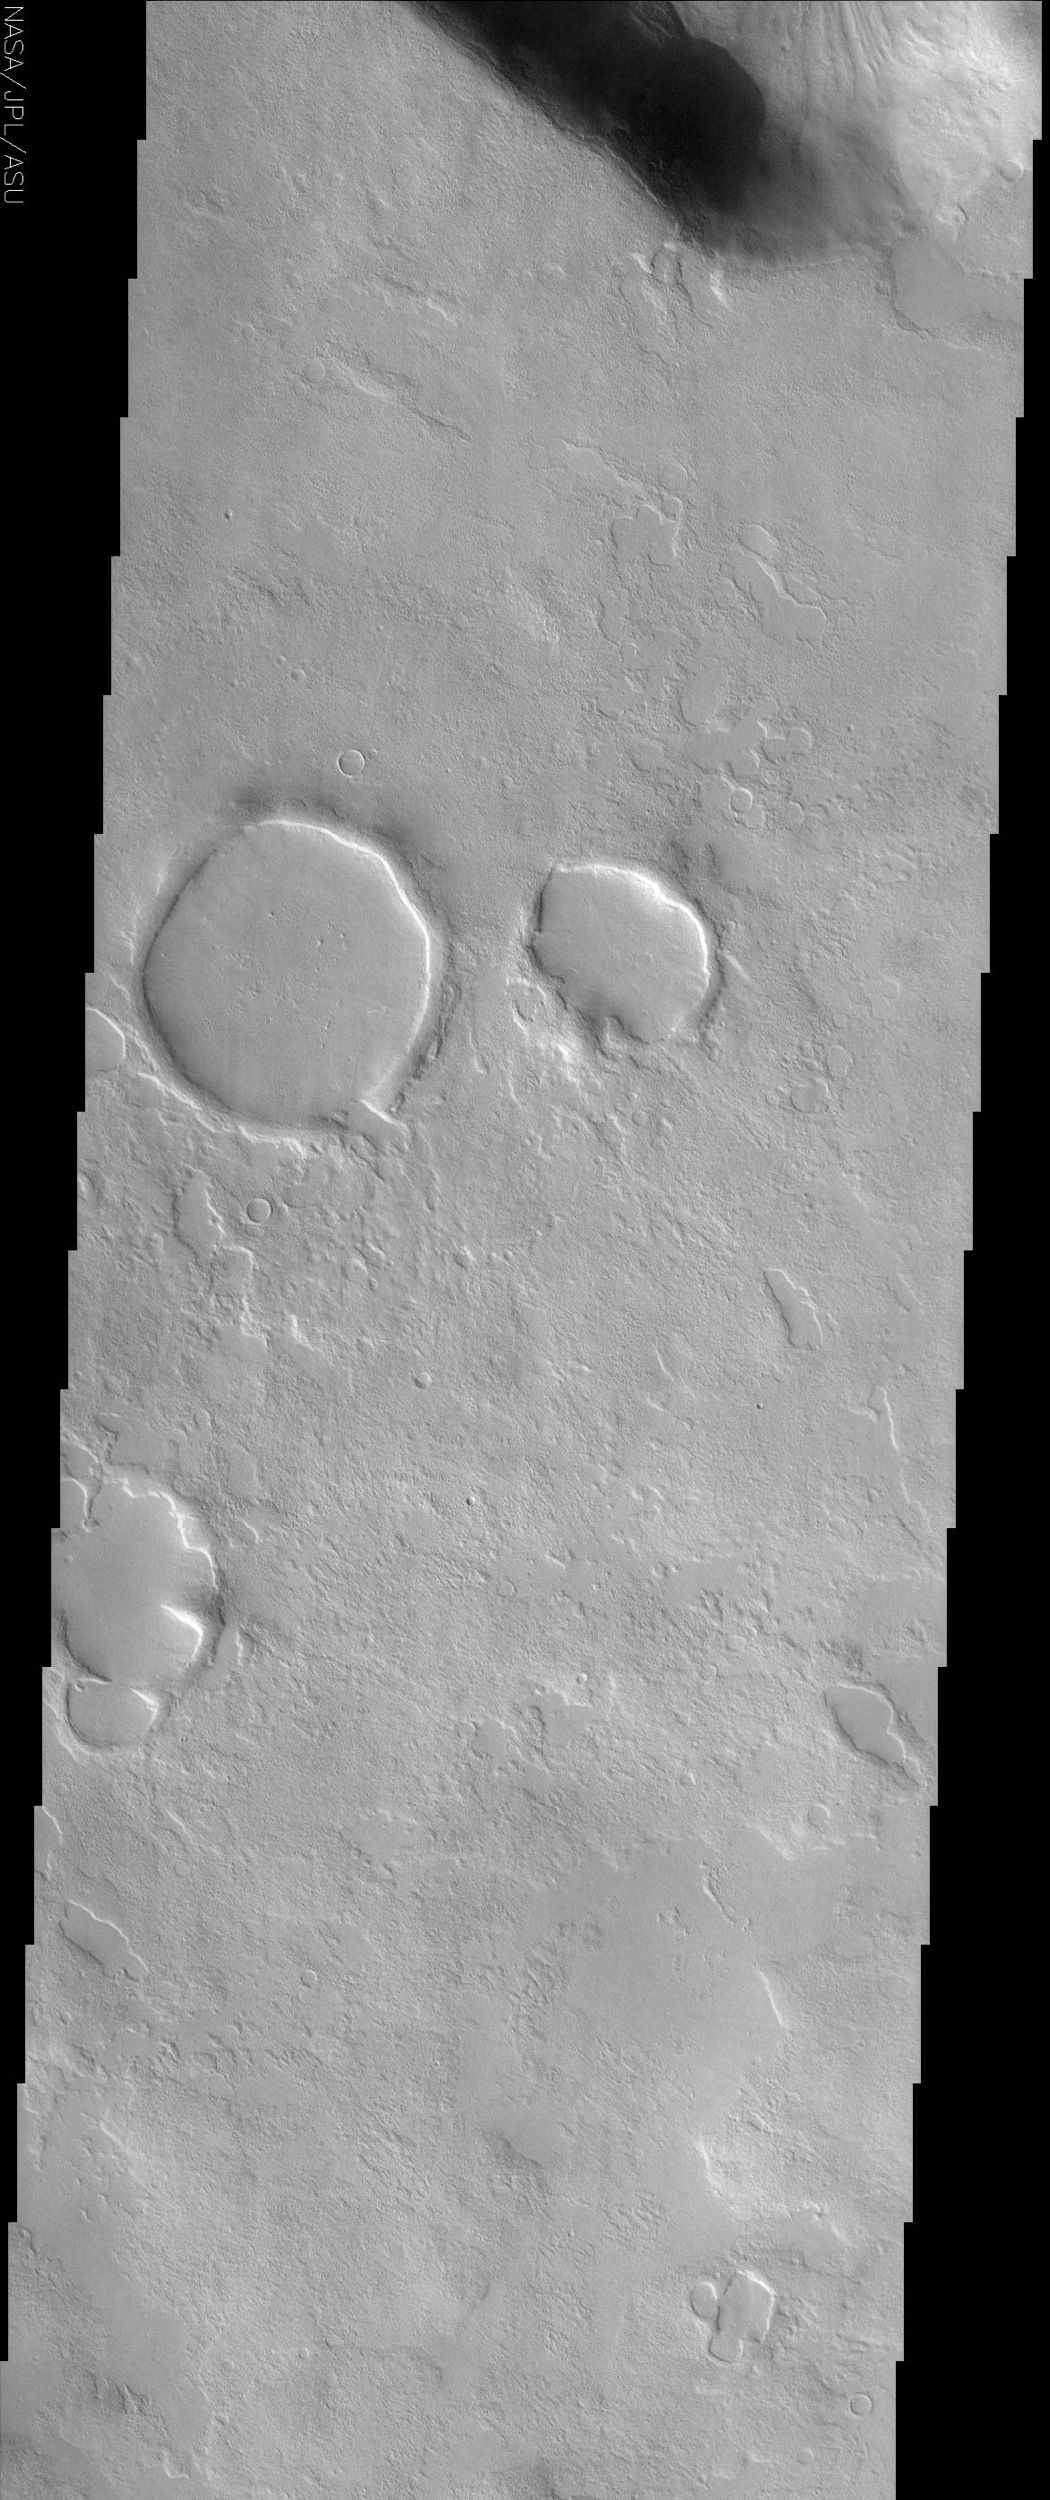 This NASA Mars Odyssey image shows a region in northern Arabia Terra where knobby or 'scabby' plains units that mantle and modify a pre-existing cratered surface dominate the unusual landscape.